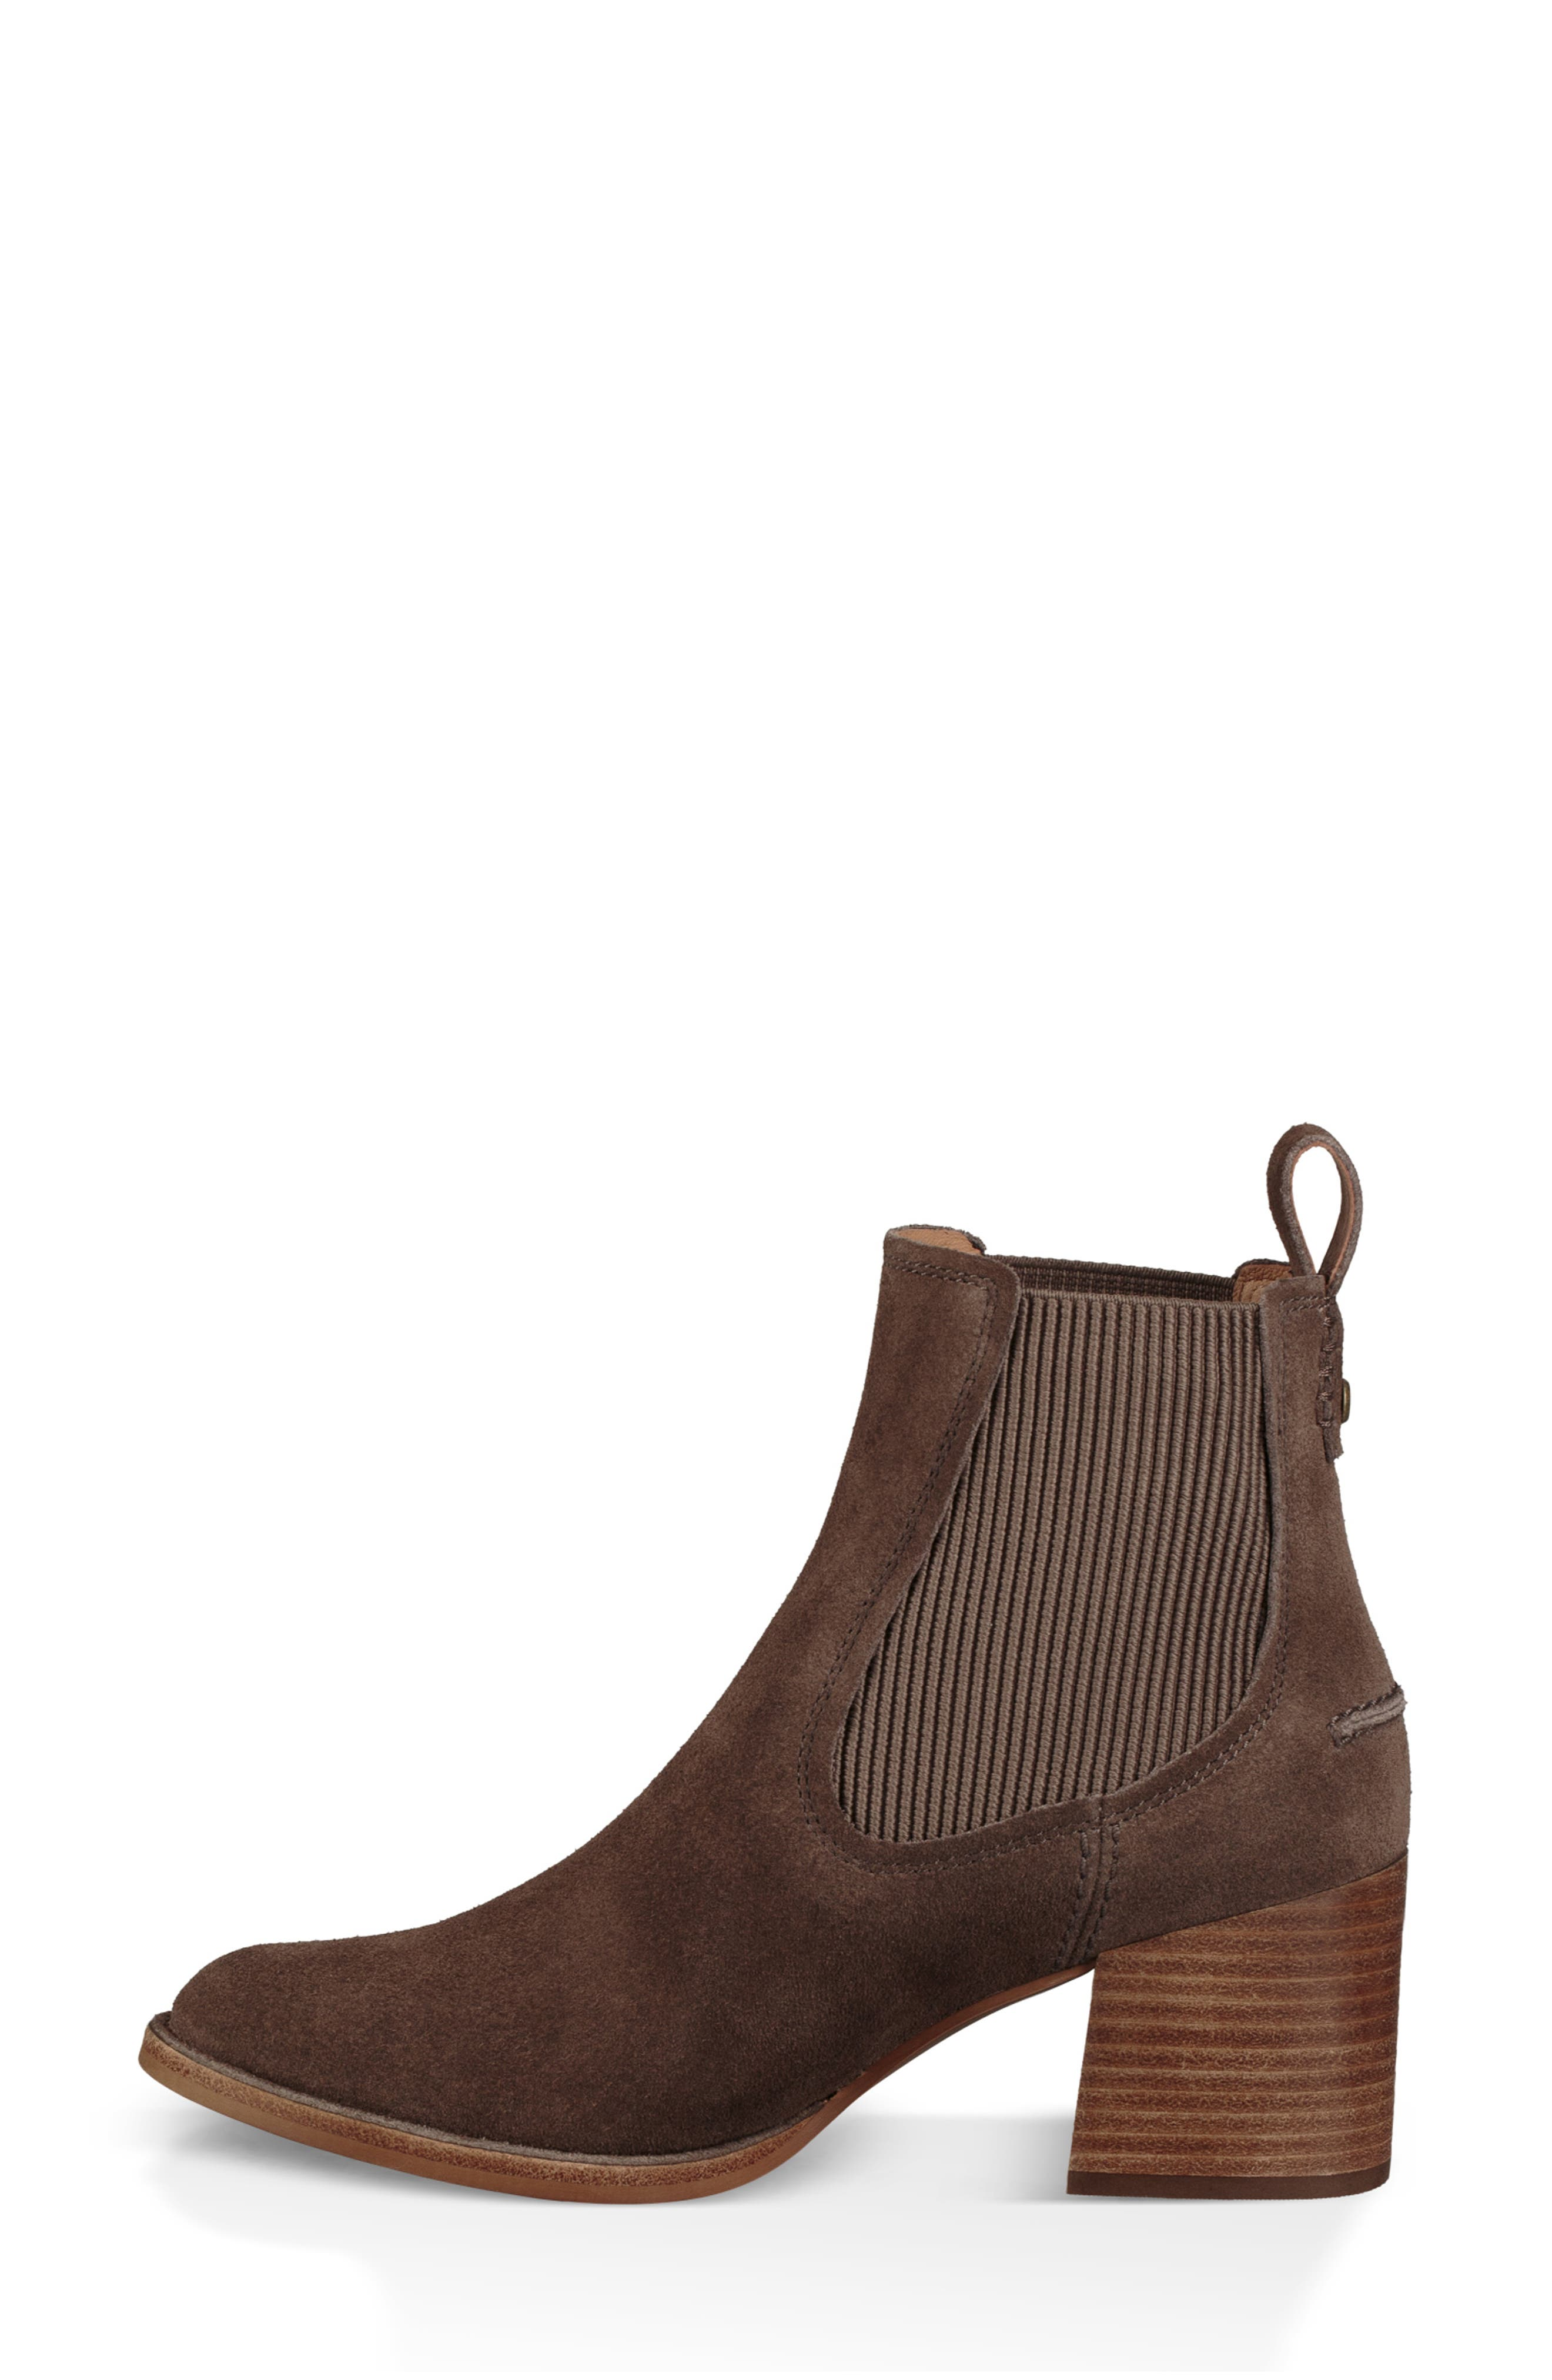 Faye Chelsea Bootie,                             Alternate thumbnail 6, color,                             MYSTERIOUS SUEDE